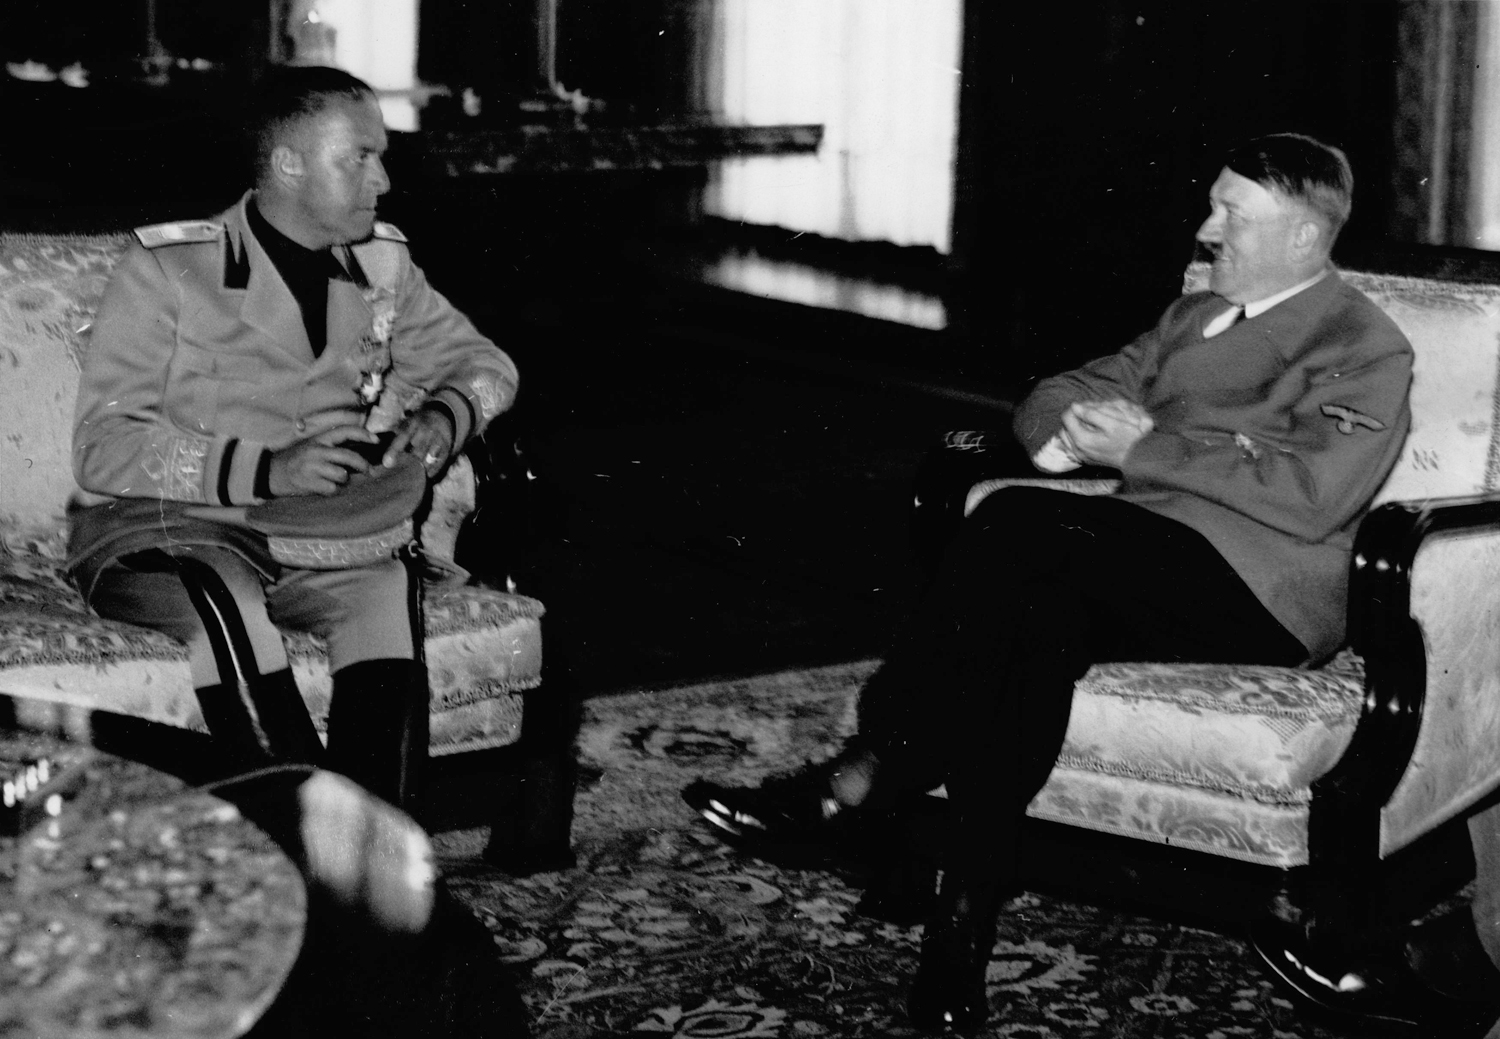 Adolf Hitler in conversation with the Italian Foreign Minister Count Galeazzo Ciano in the Reich Chancellery